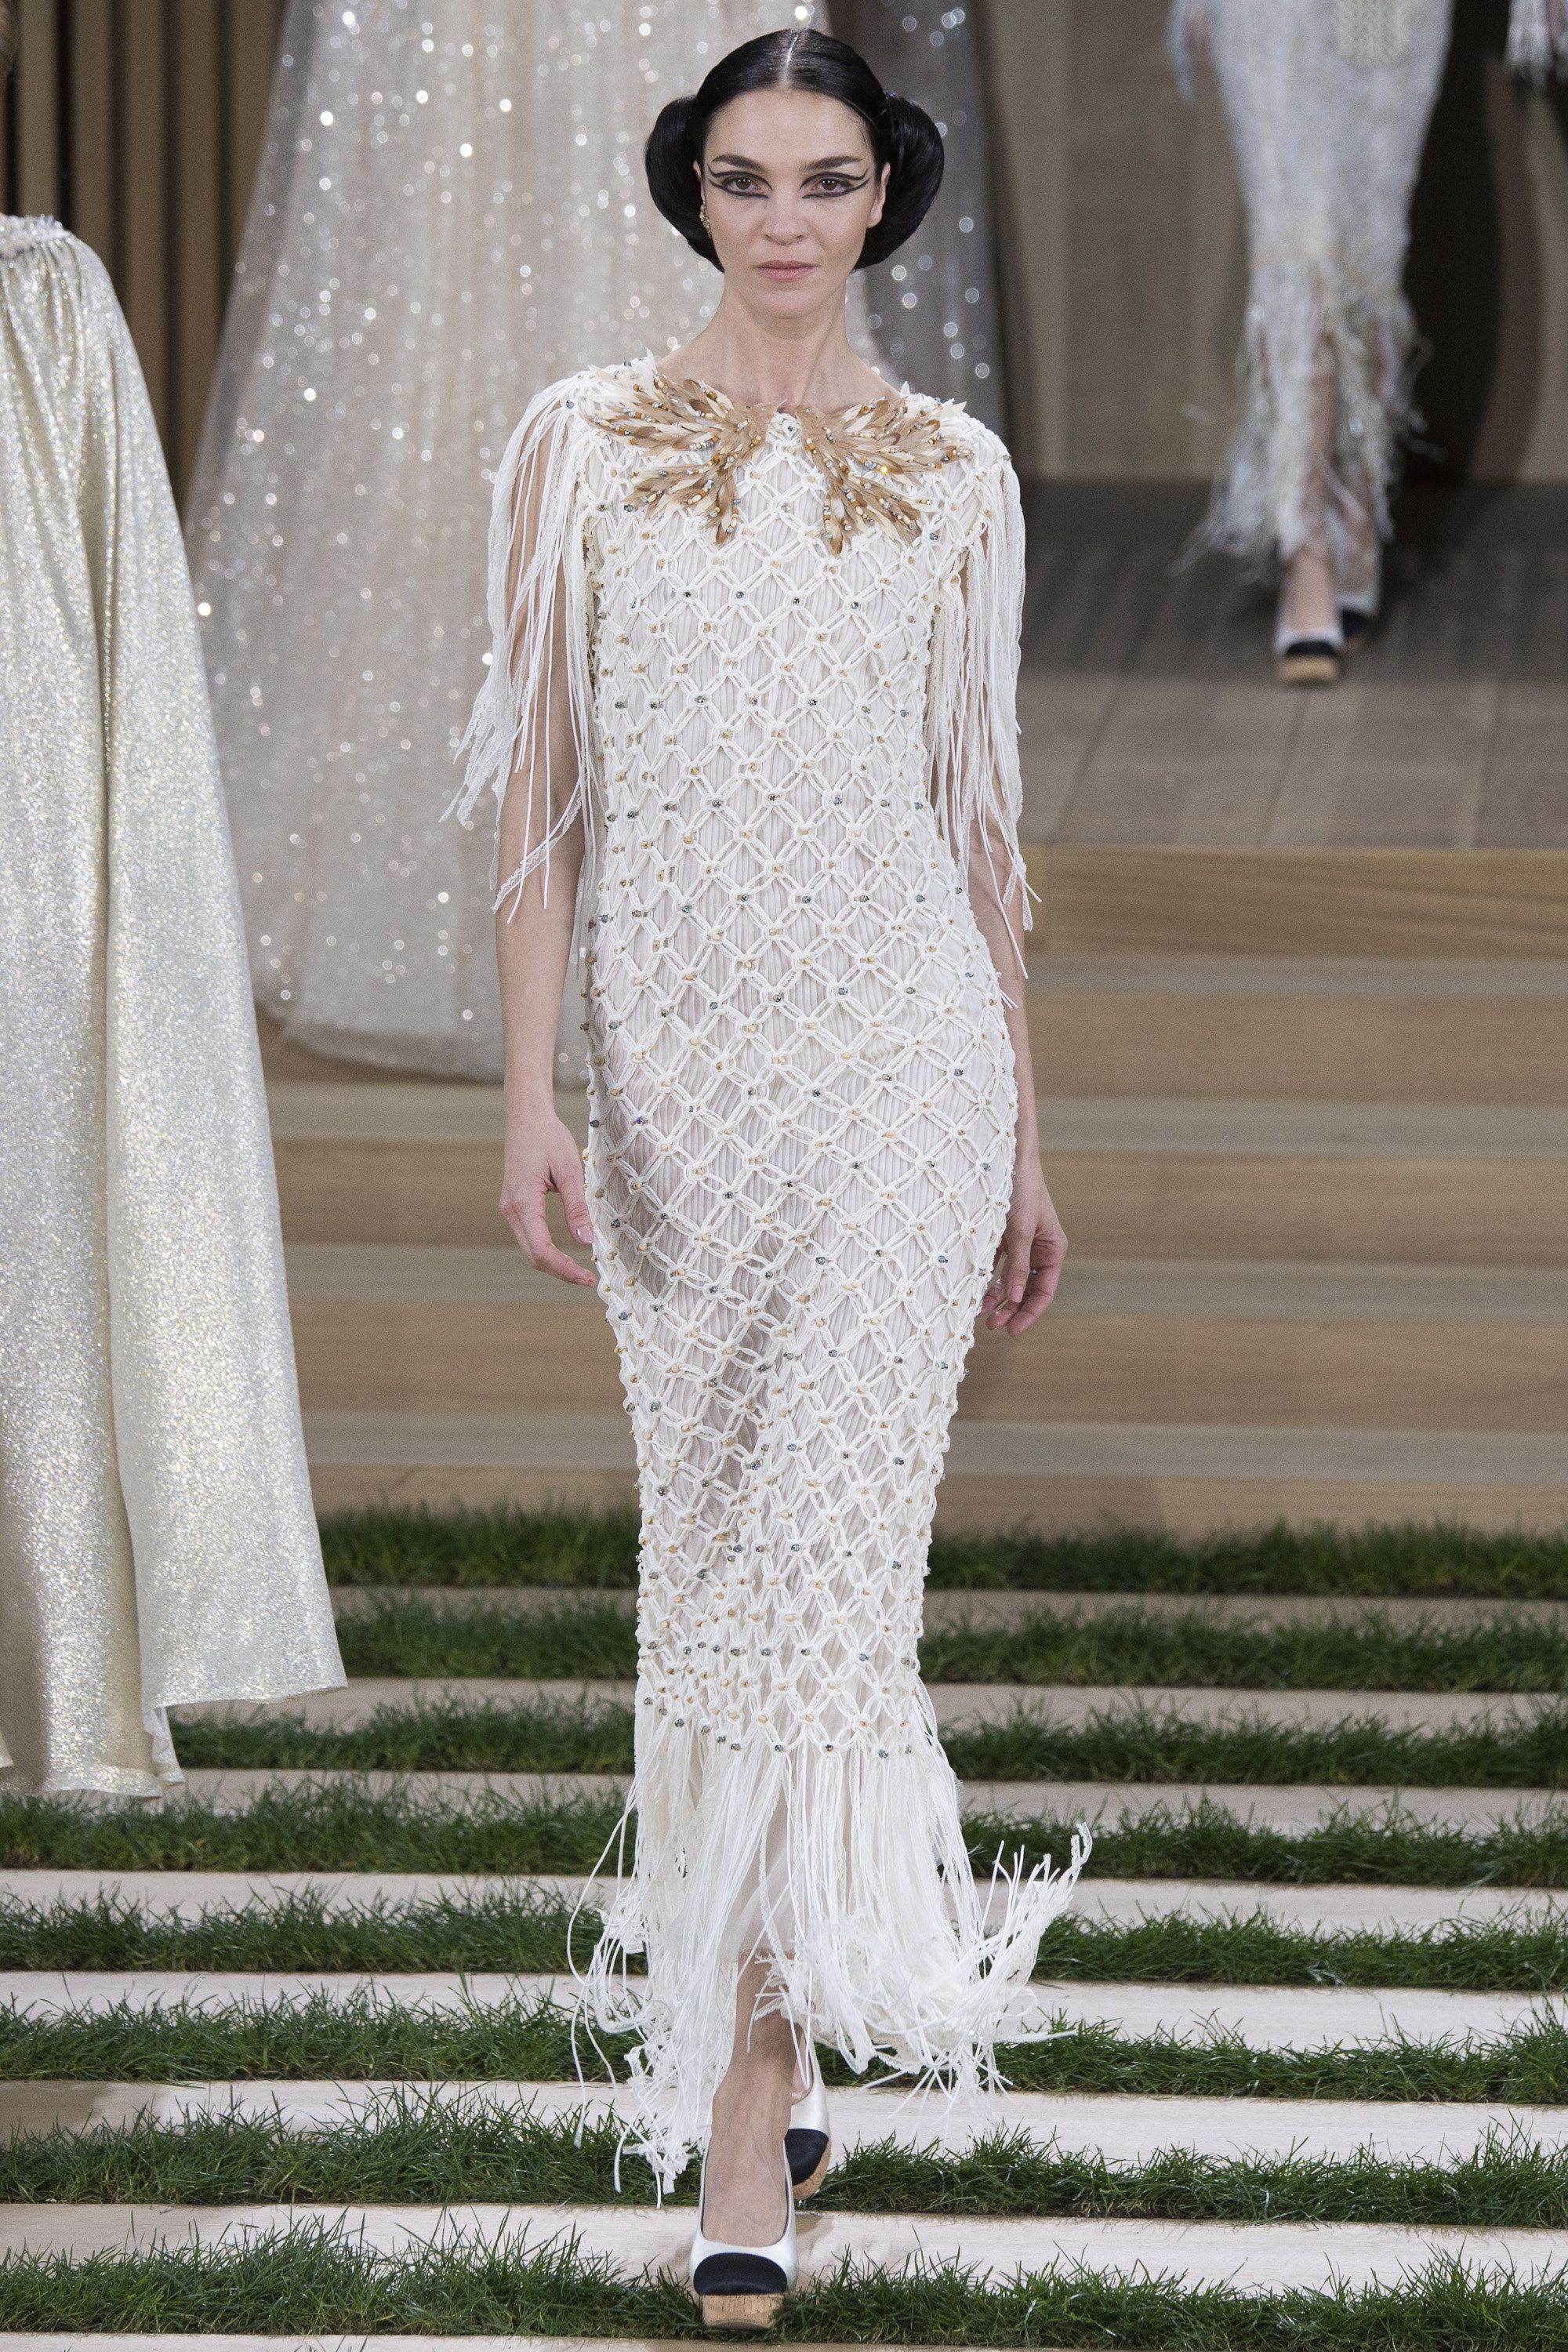 Chanel Spring 2016 Couture Fashion Show - Mariacarla Boscono (Viva) loving the 70's and 40's feel of this dress, ready for dancing!